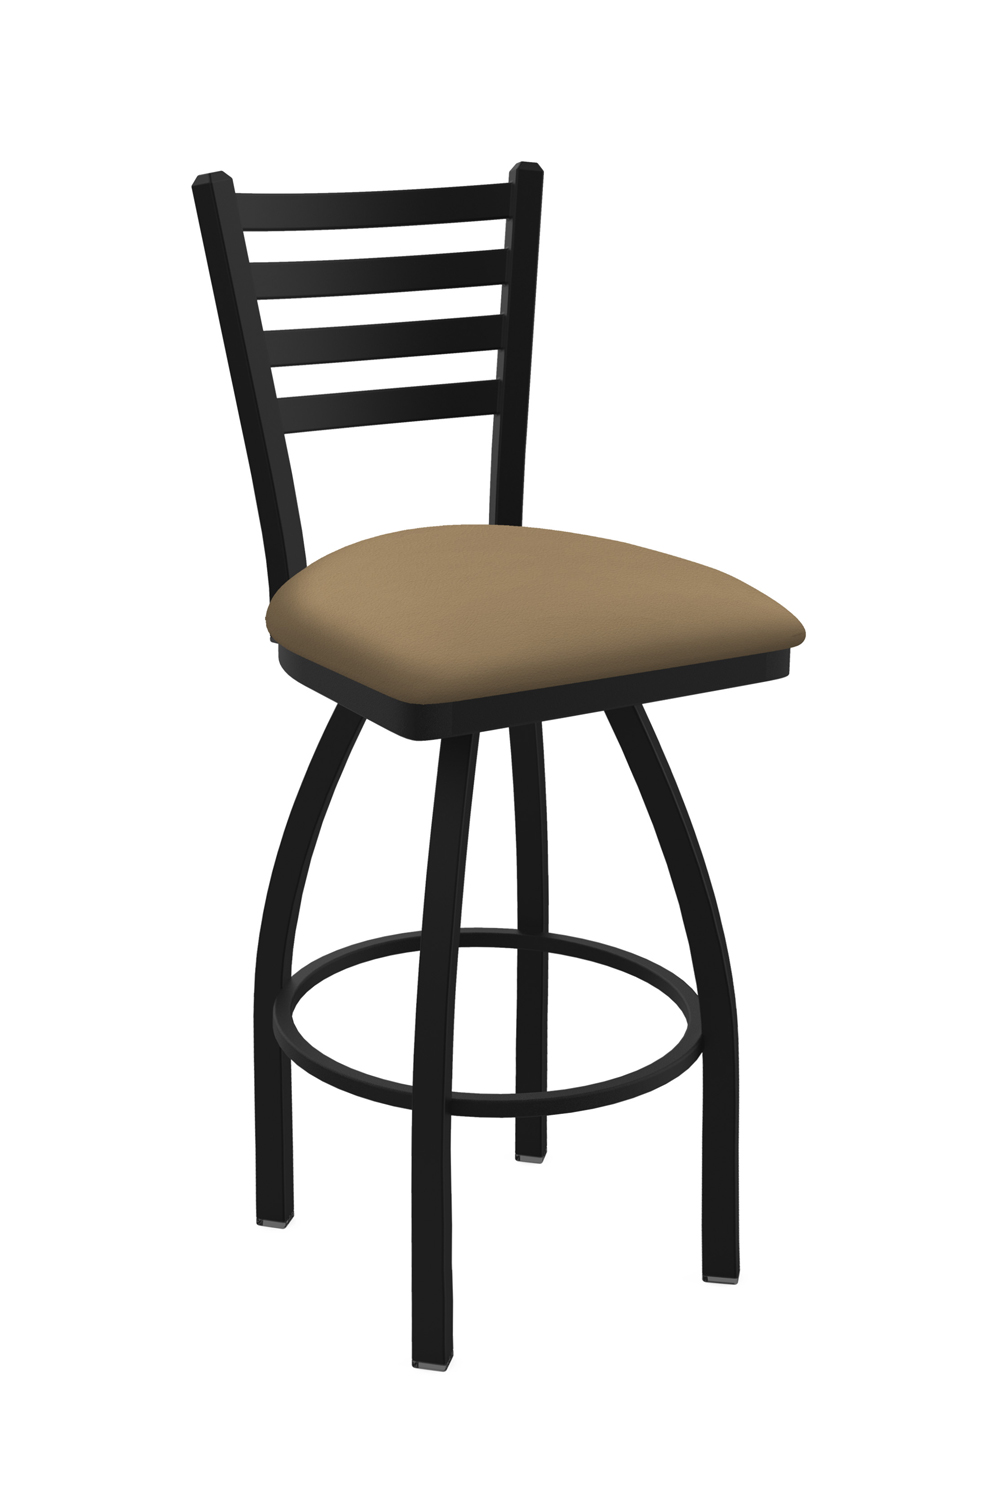 Admirable Jackie Swivel Stool 410 Andrewgaddart Wooden Chair Designs For Living Room Andrewgaddartcom